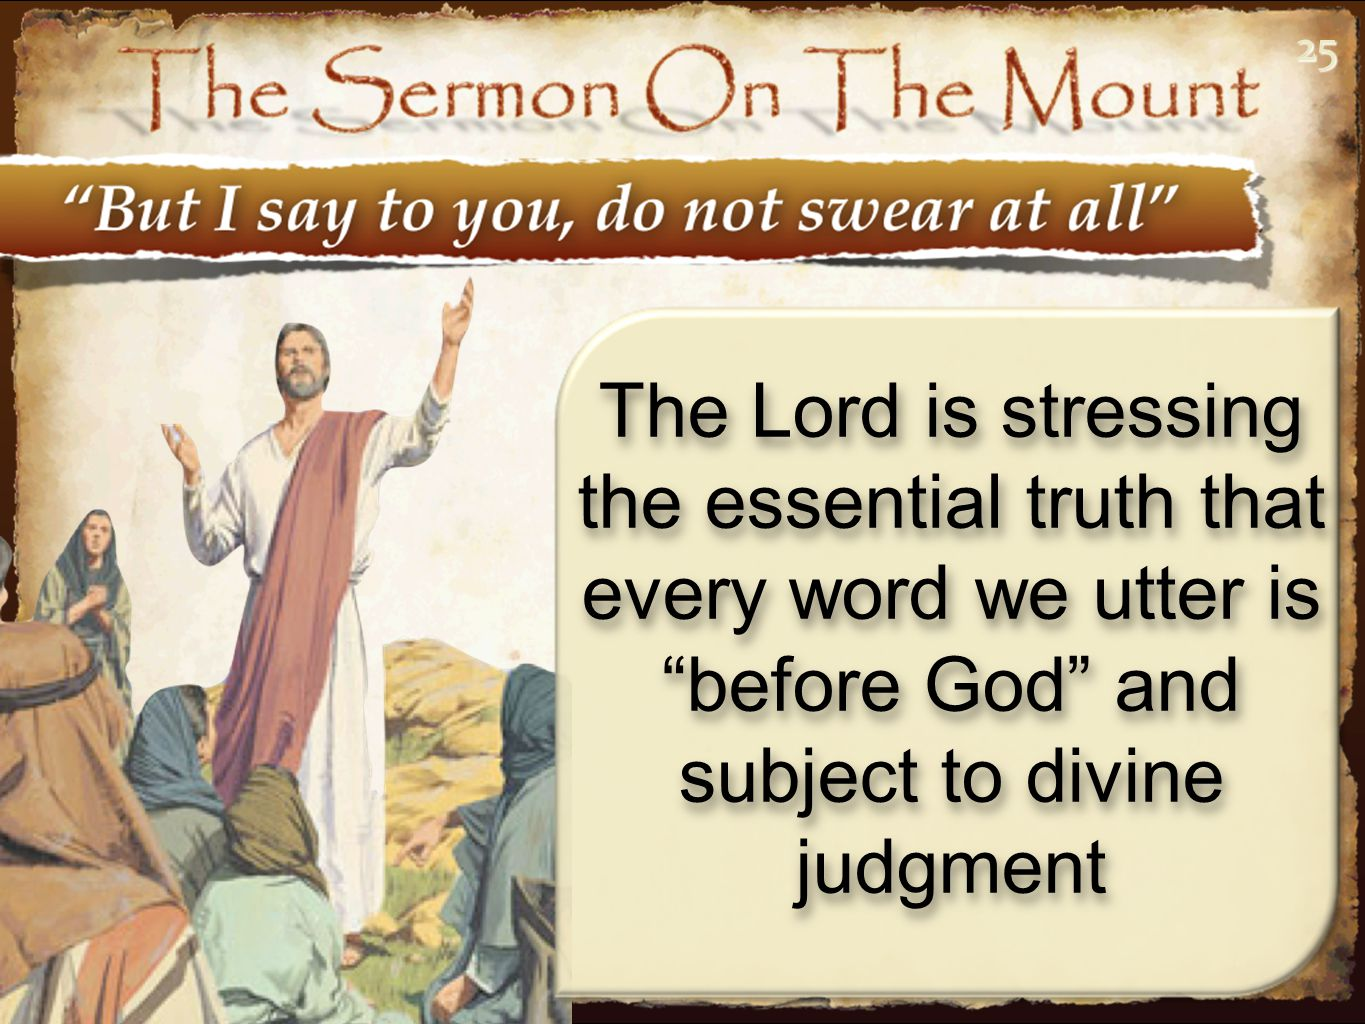 25 The Lord is stressing the essential truth that every word we utter is before God and subject to divine judgment.